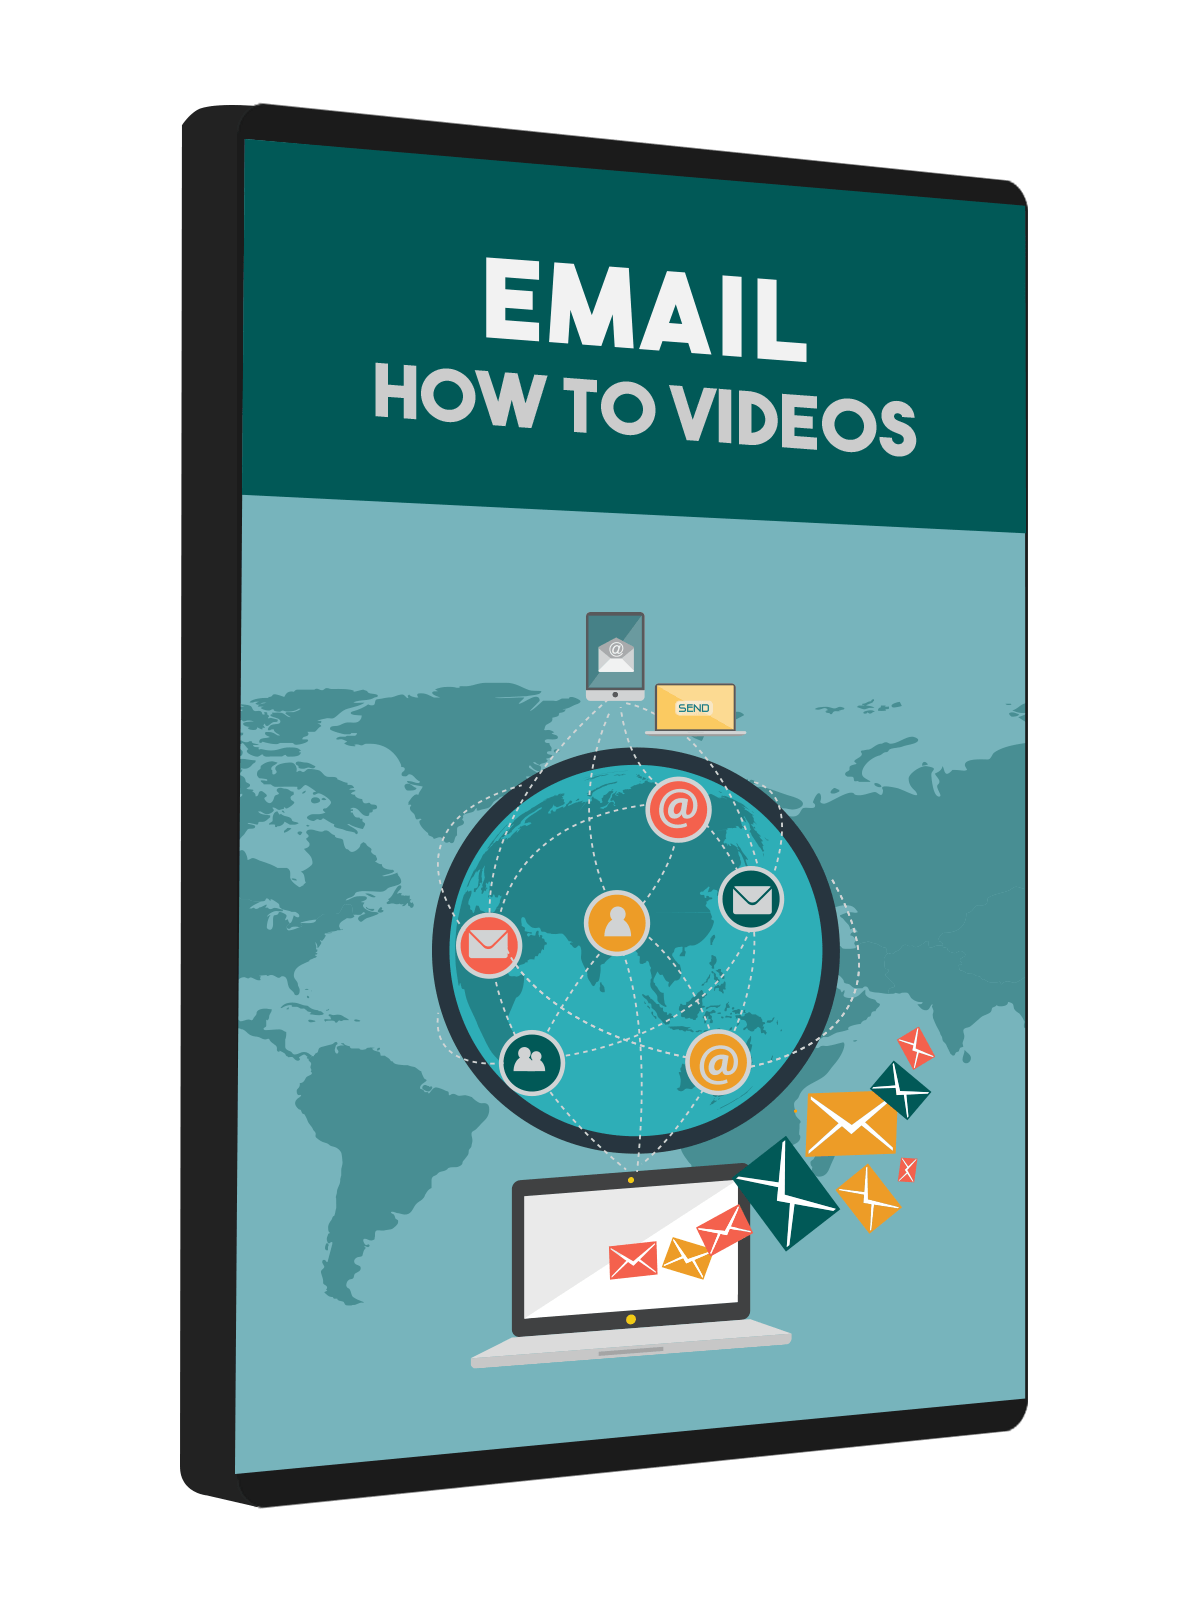 EMHTV DVDcase1 large - Top 15 Best & Easy Email Tips That Raise Conversion Rates & More Training